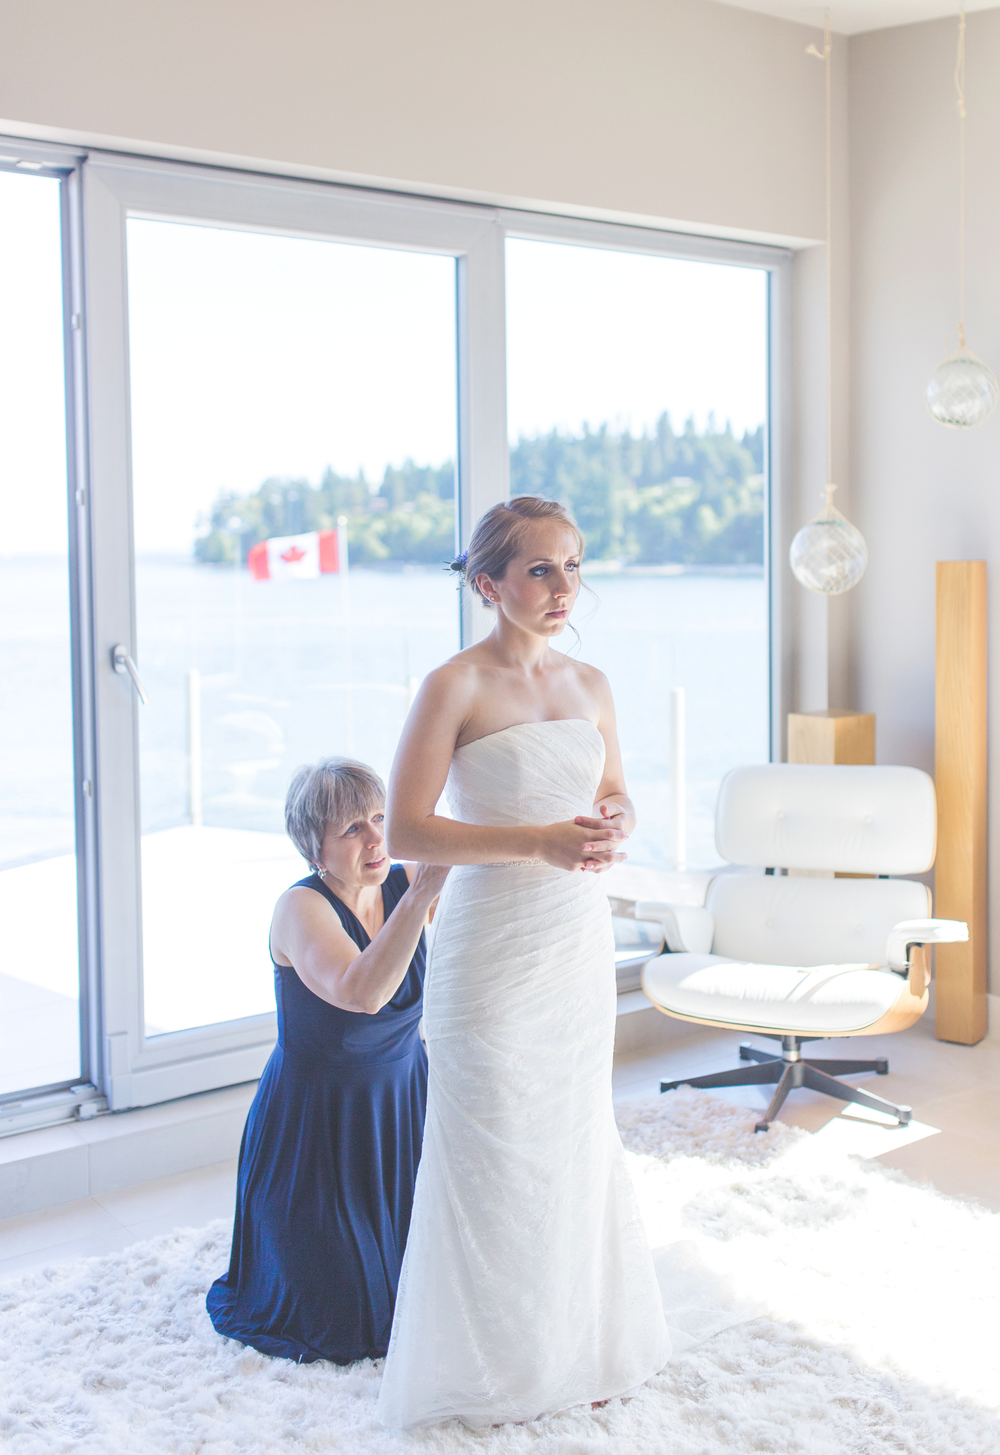 IMG_9642-SUNSHINE-COAST-BC-WEDDING-PHOTOGRAPHER-JENNIFER-PICARD-PHOTOGRAPHY.jpg